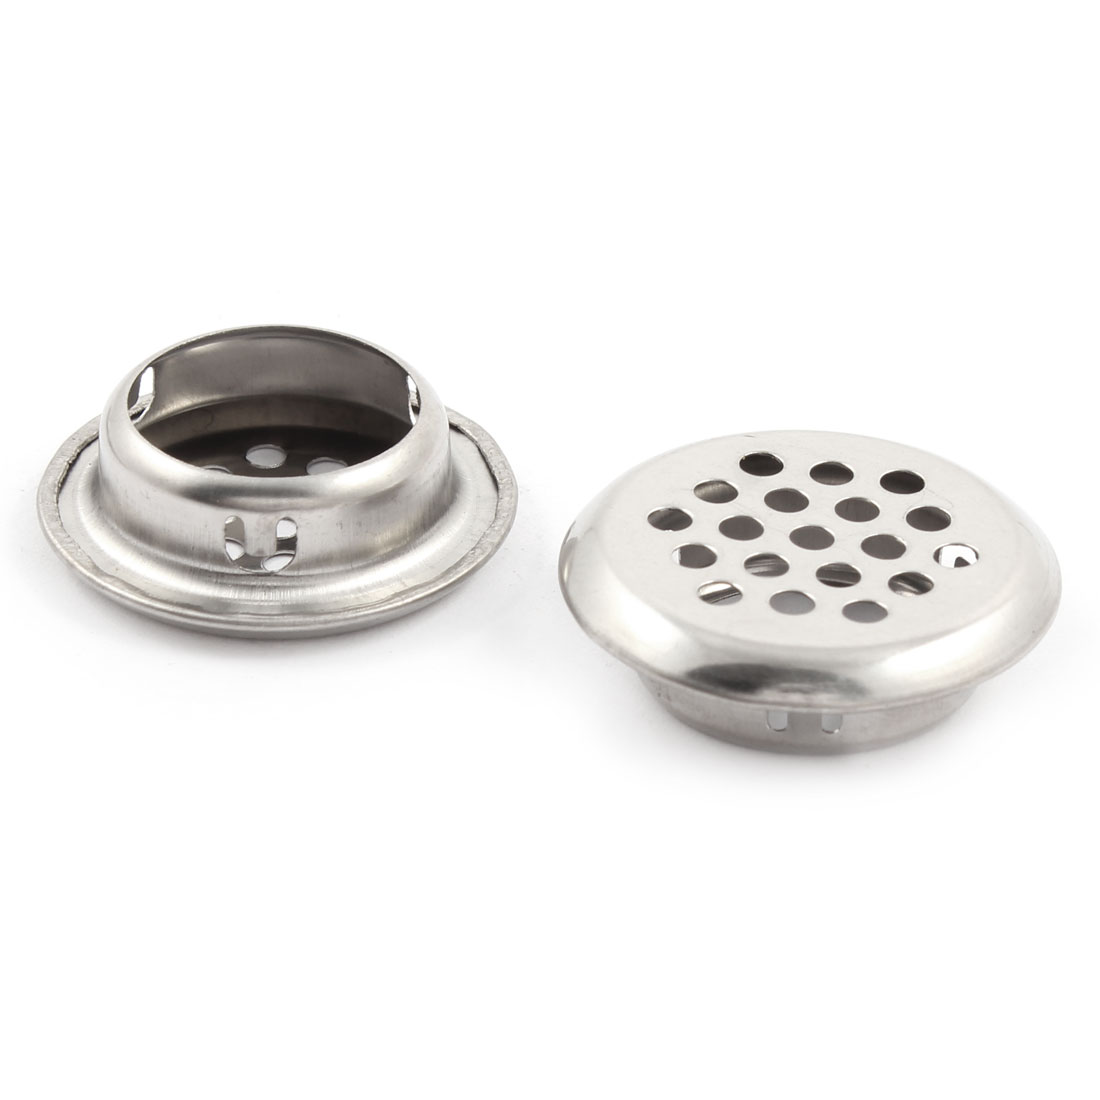 Home Hardware Metal Round Air Vent Louver Silver Tone 25mm Botton Diameter 10pcs - image 1 of 2